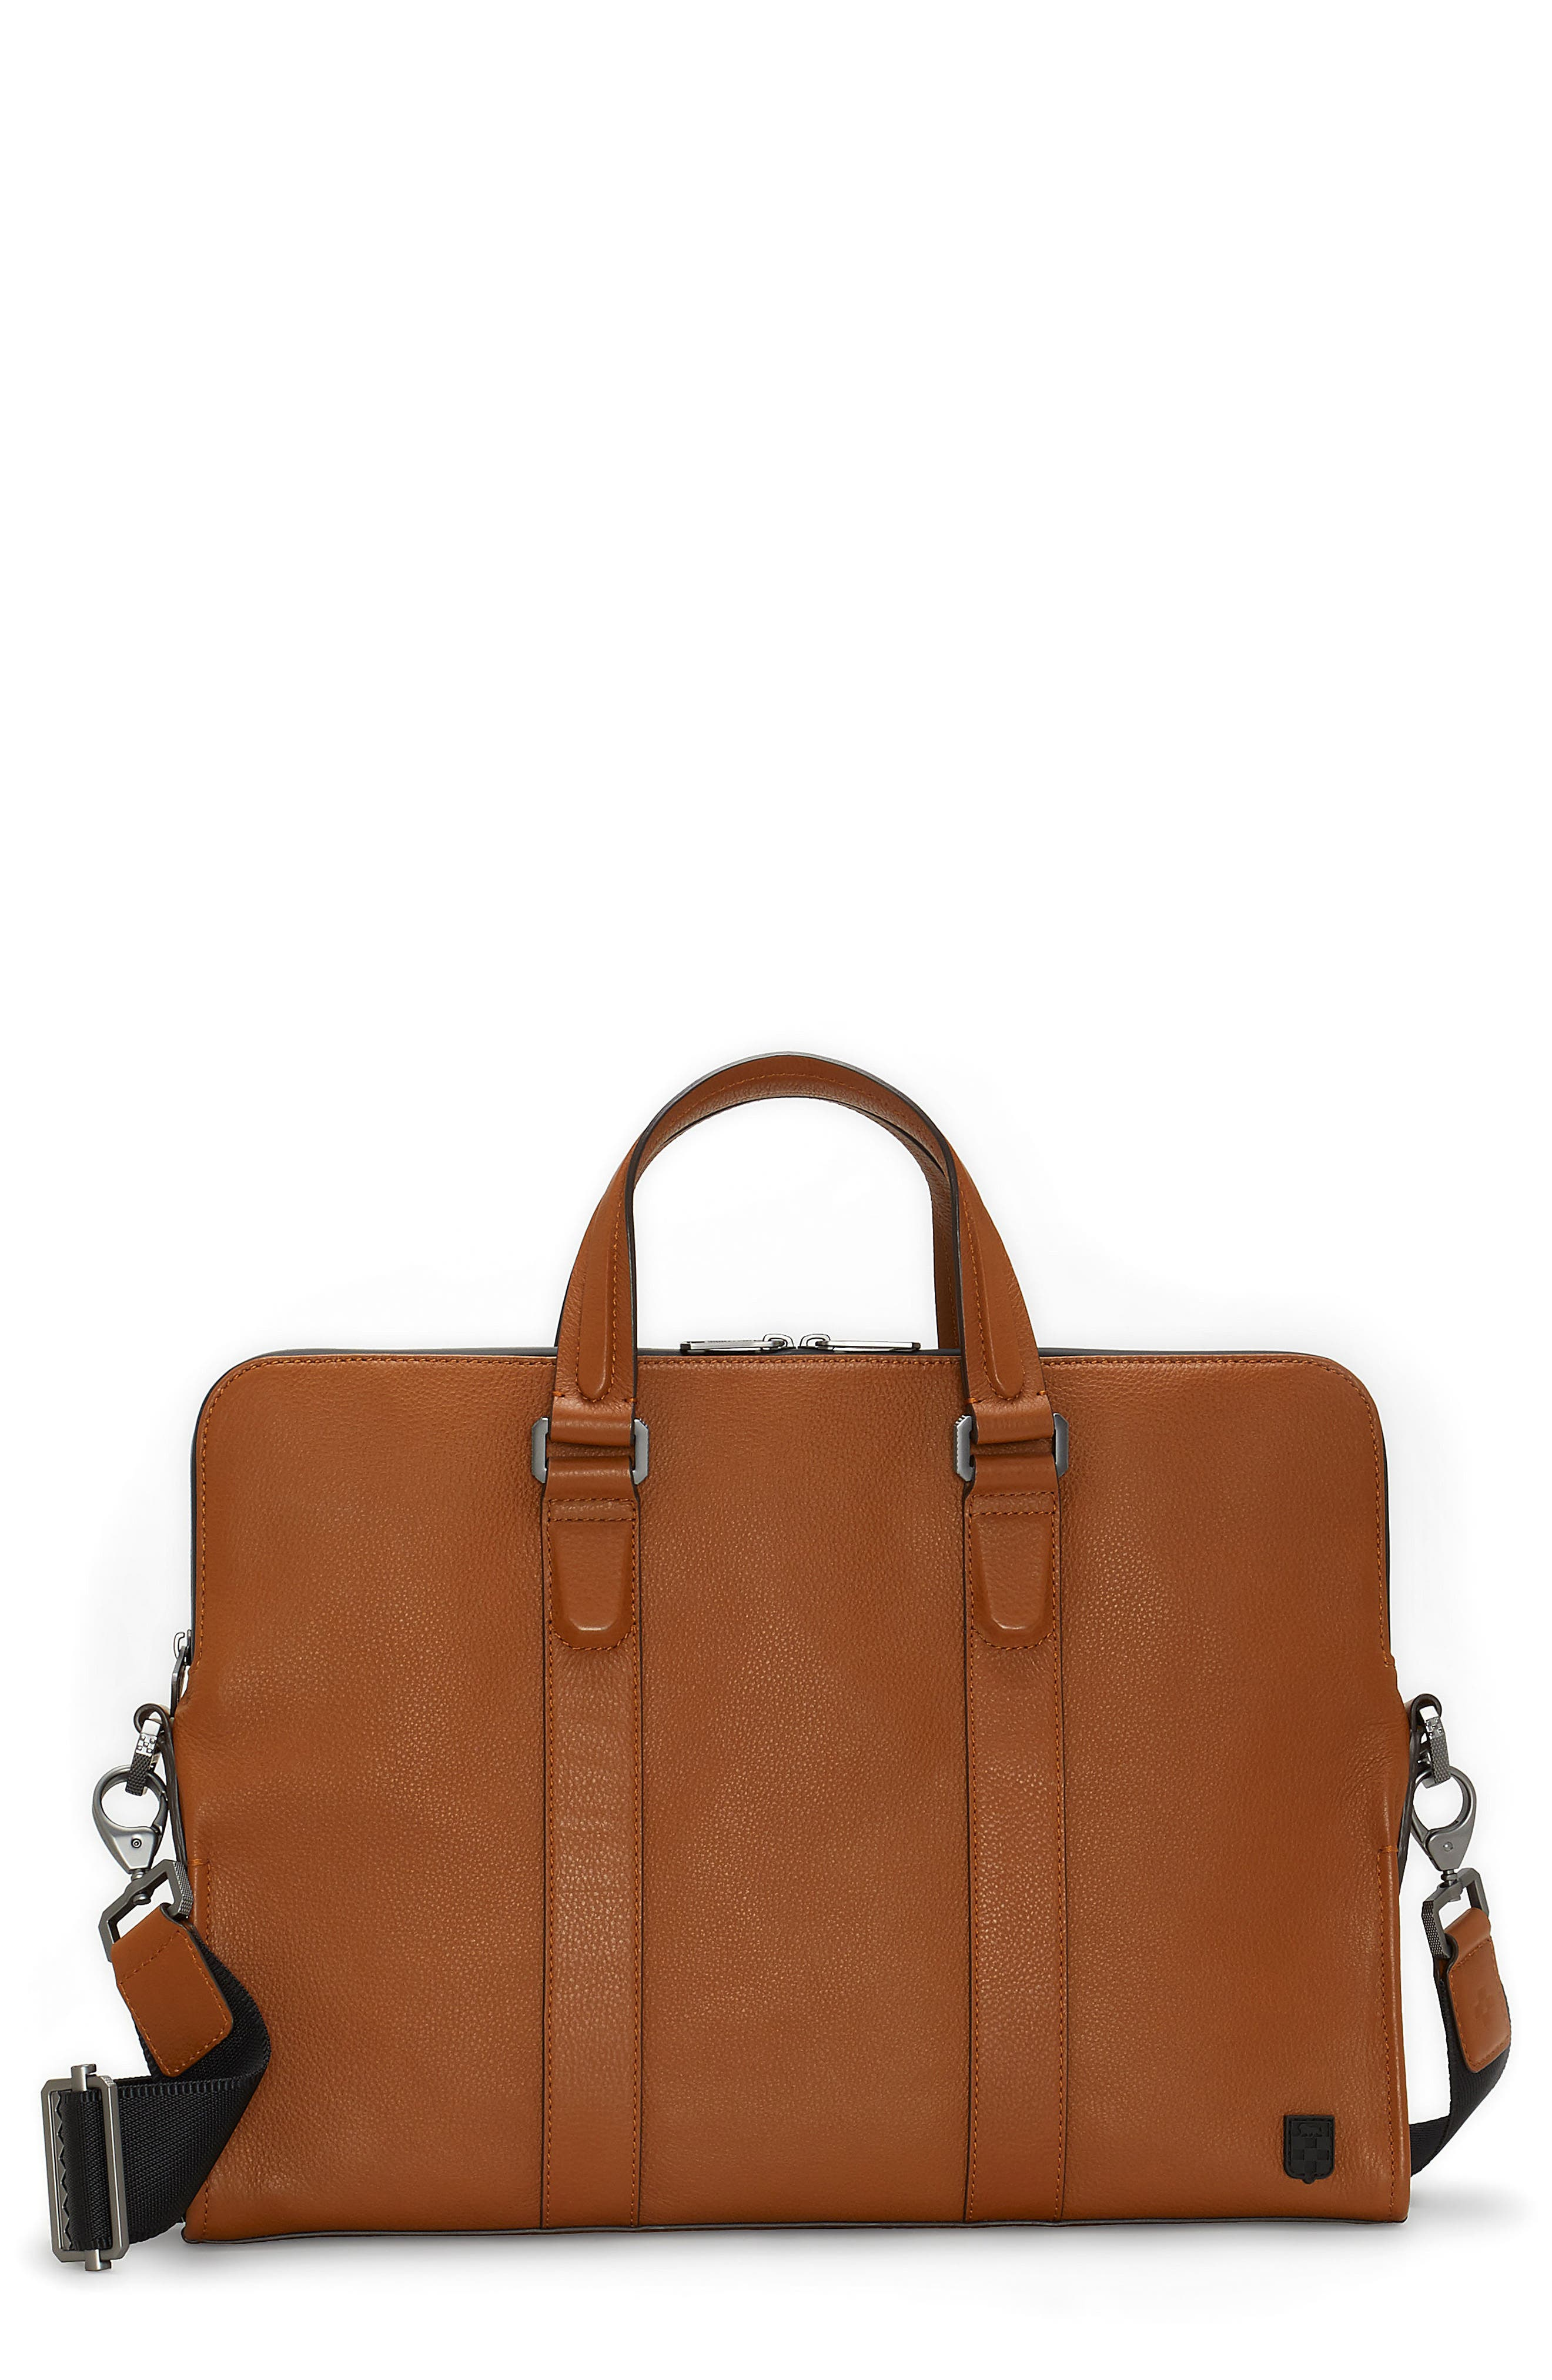 Dopia Leather Briefcase,                             Main thumbnail 1, color,                             201